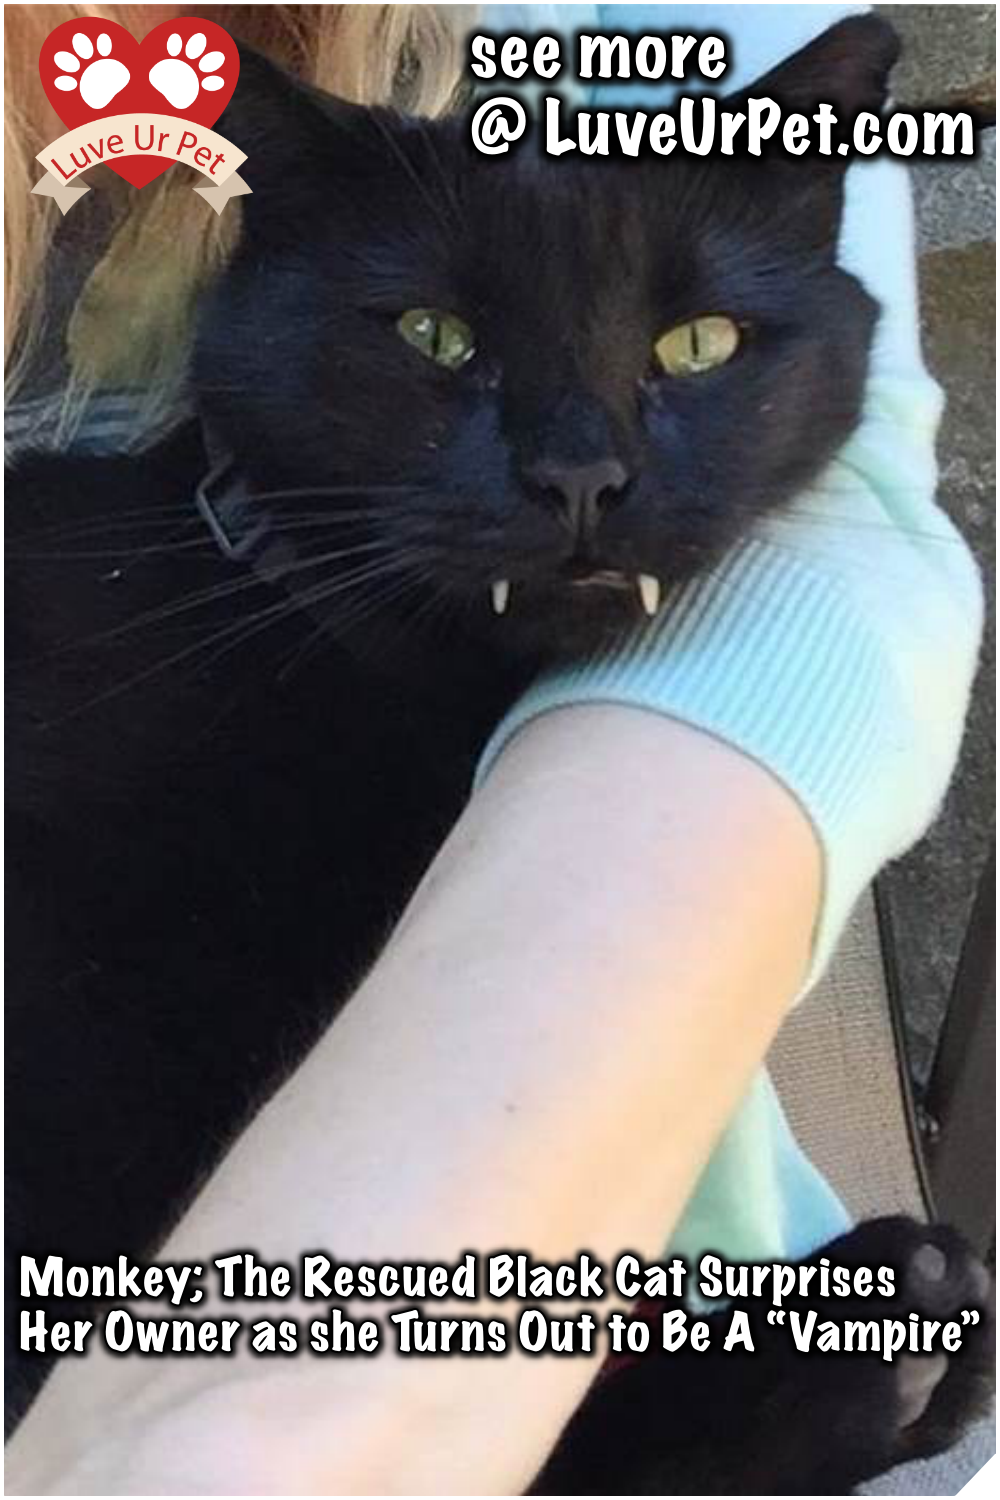 Monkey The Rescued Black Cat Surprises Her Owner As He Turns Out To Be A Vampire Monkey Rescuecat Blackcat Surprises Owner Black Cat Cats Pet Monkey